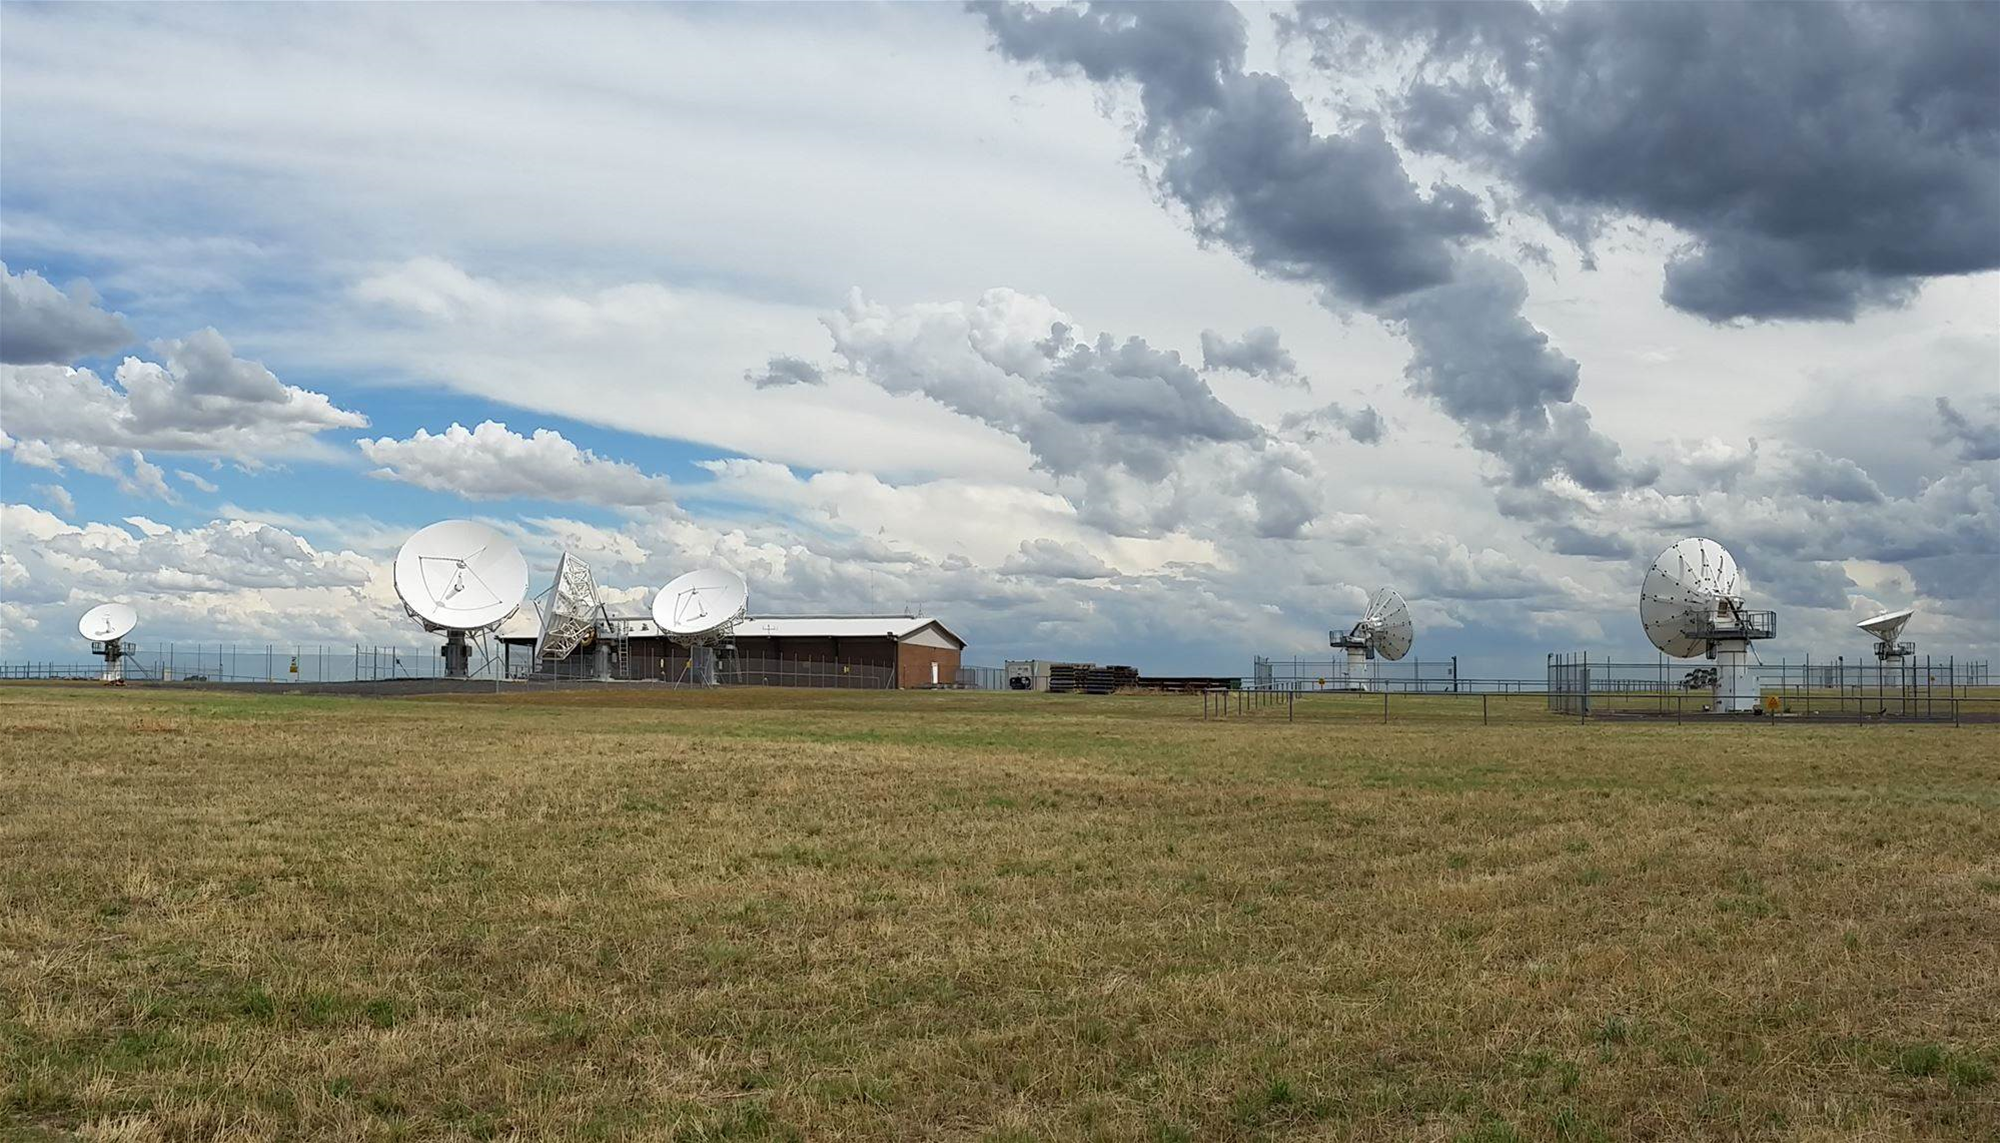 Pivotel combines 4G, satellites for rural IoT